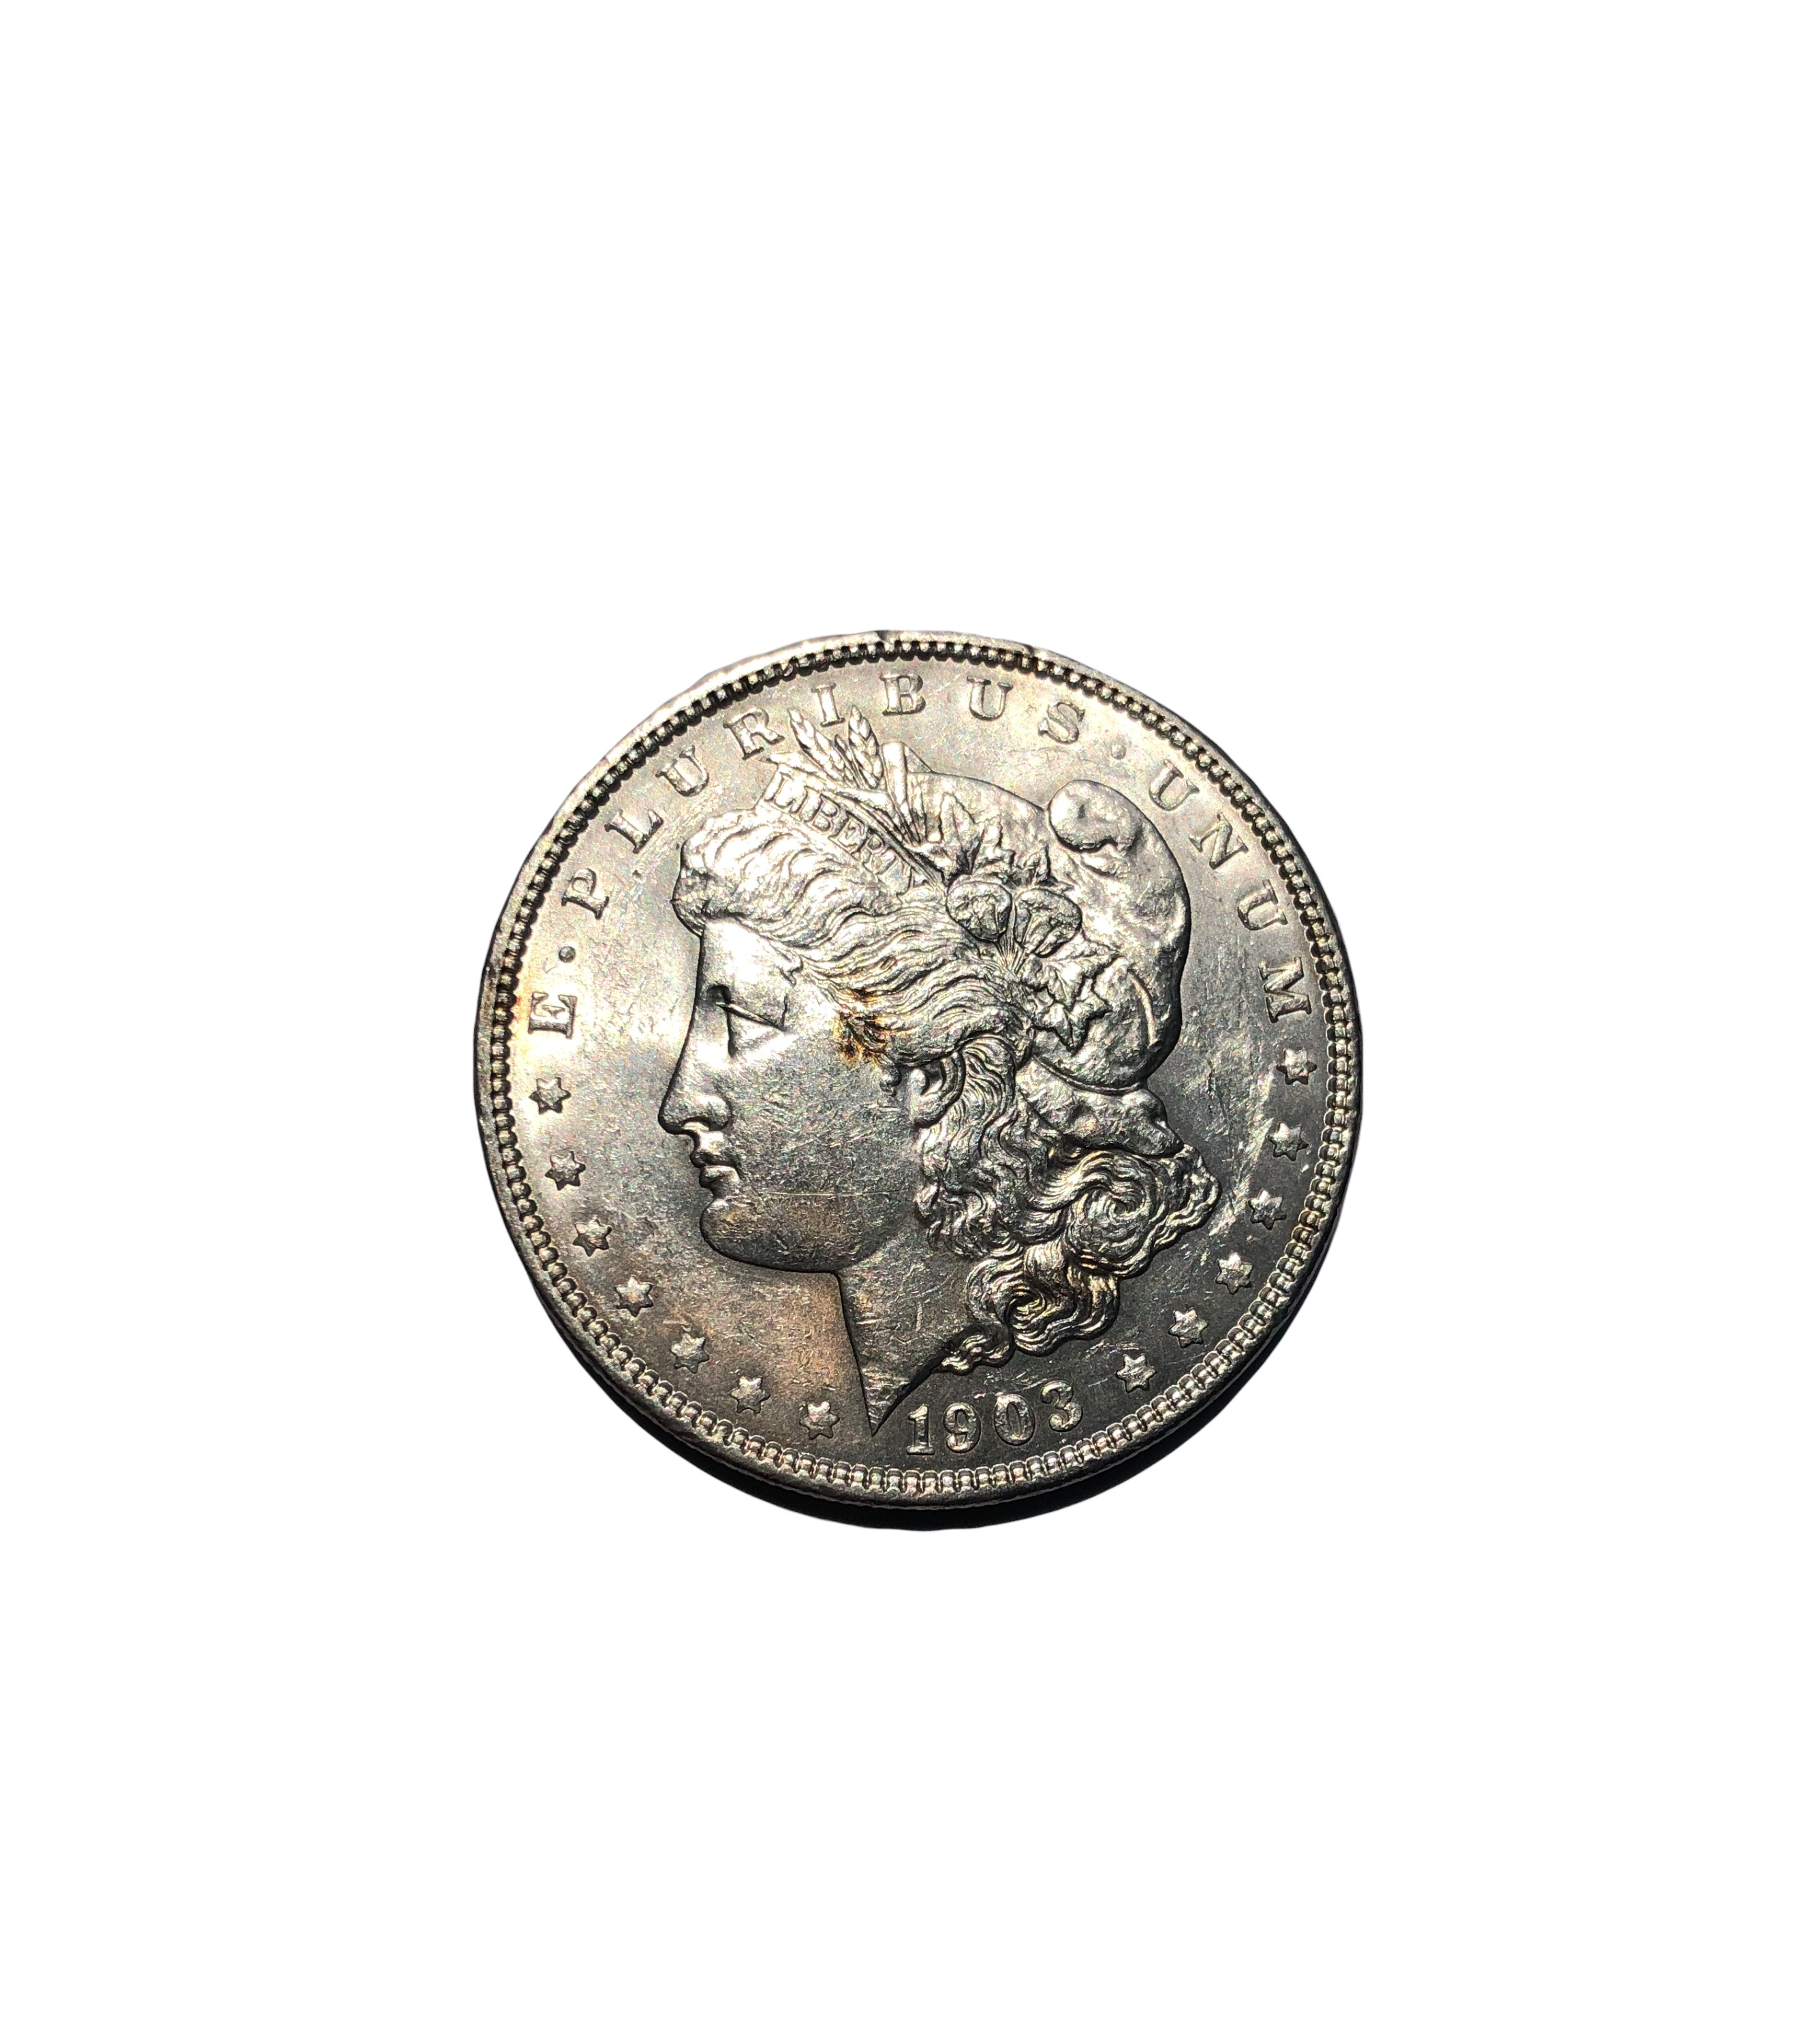 1903 Morgan Dollar (MS-60)